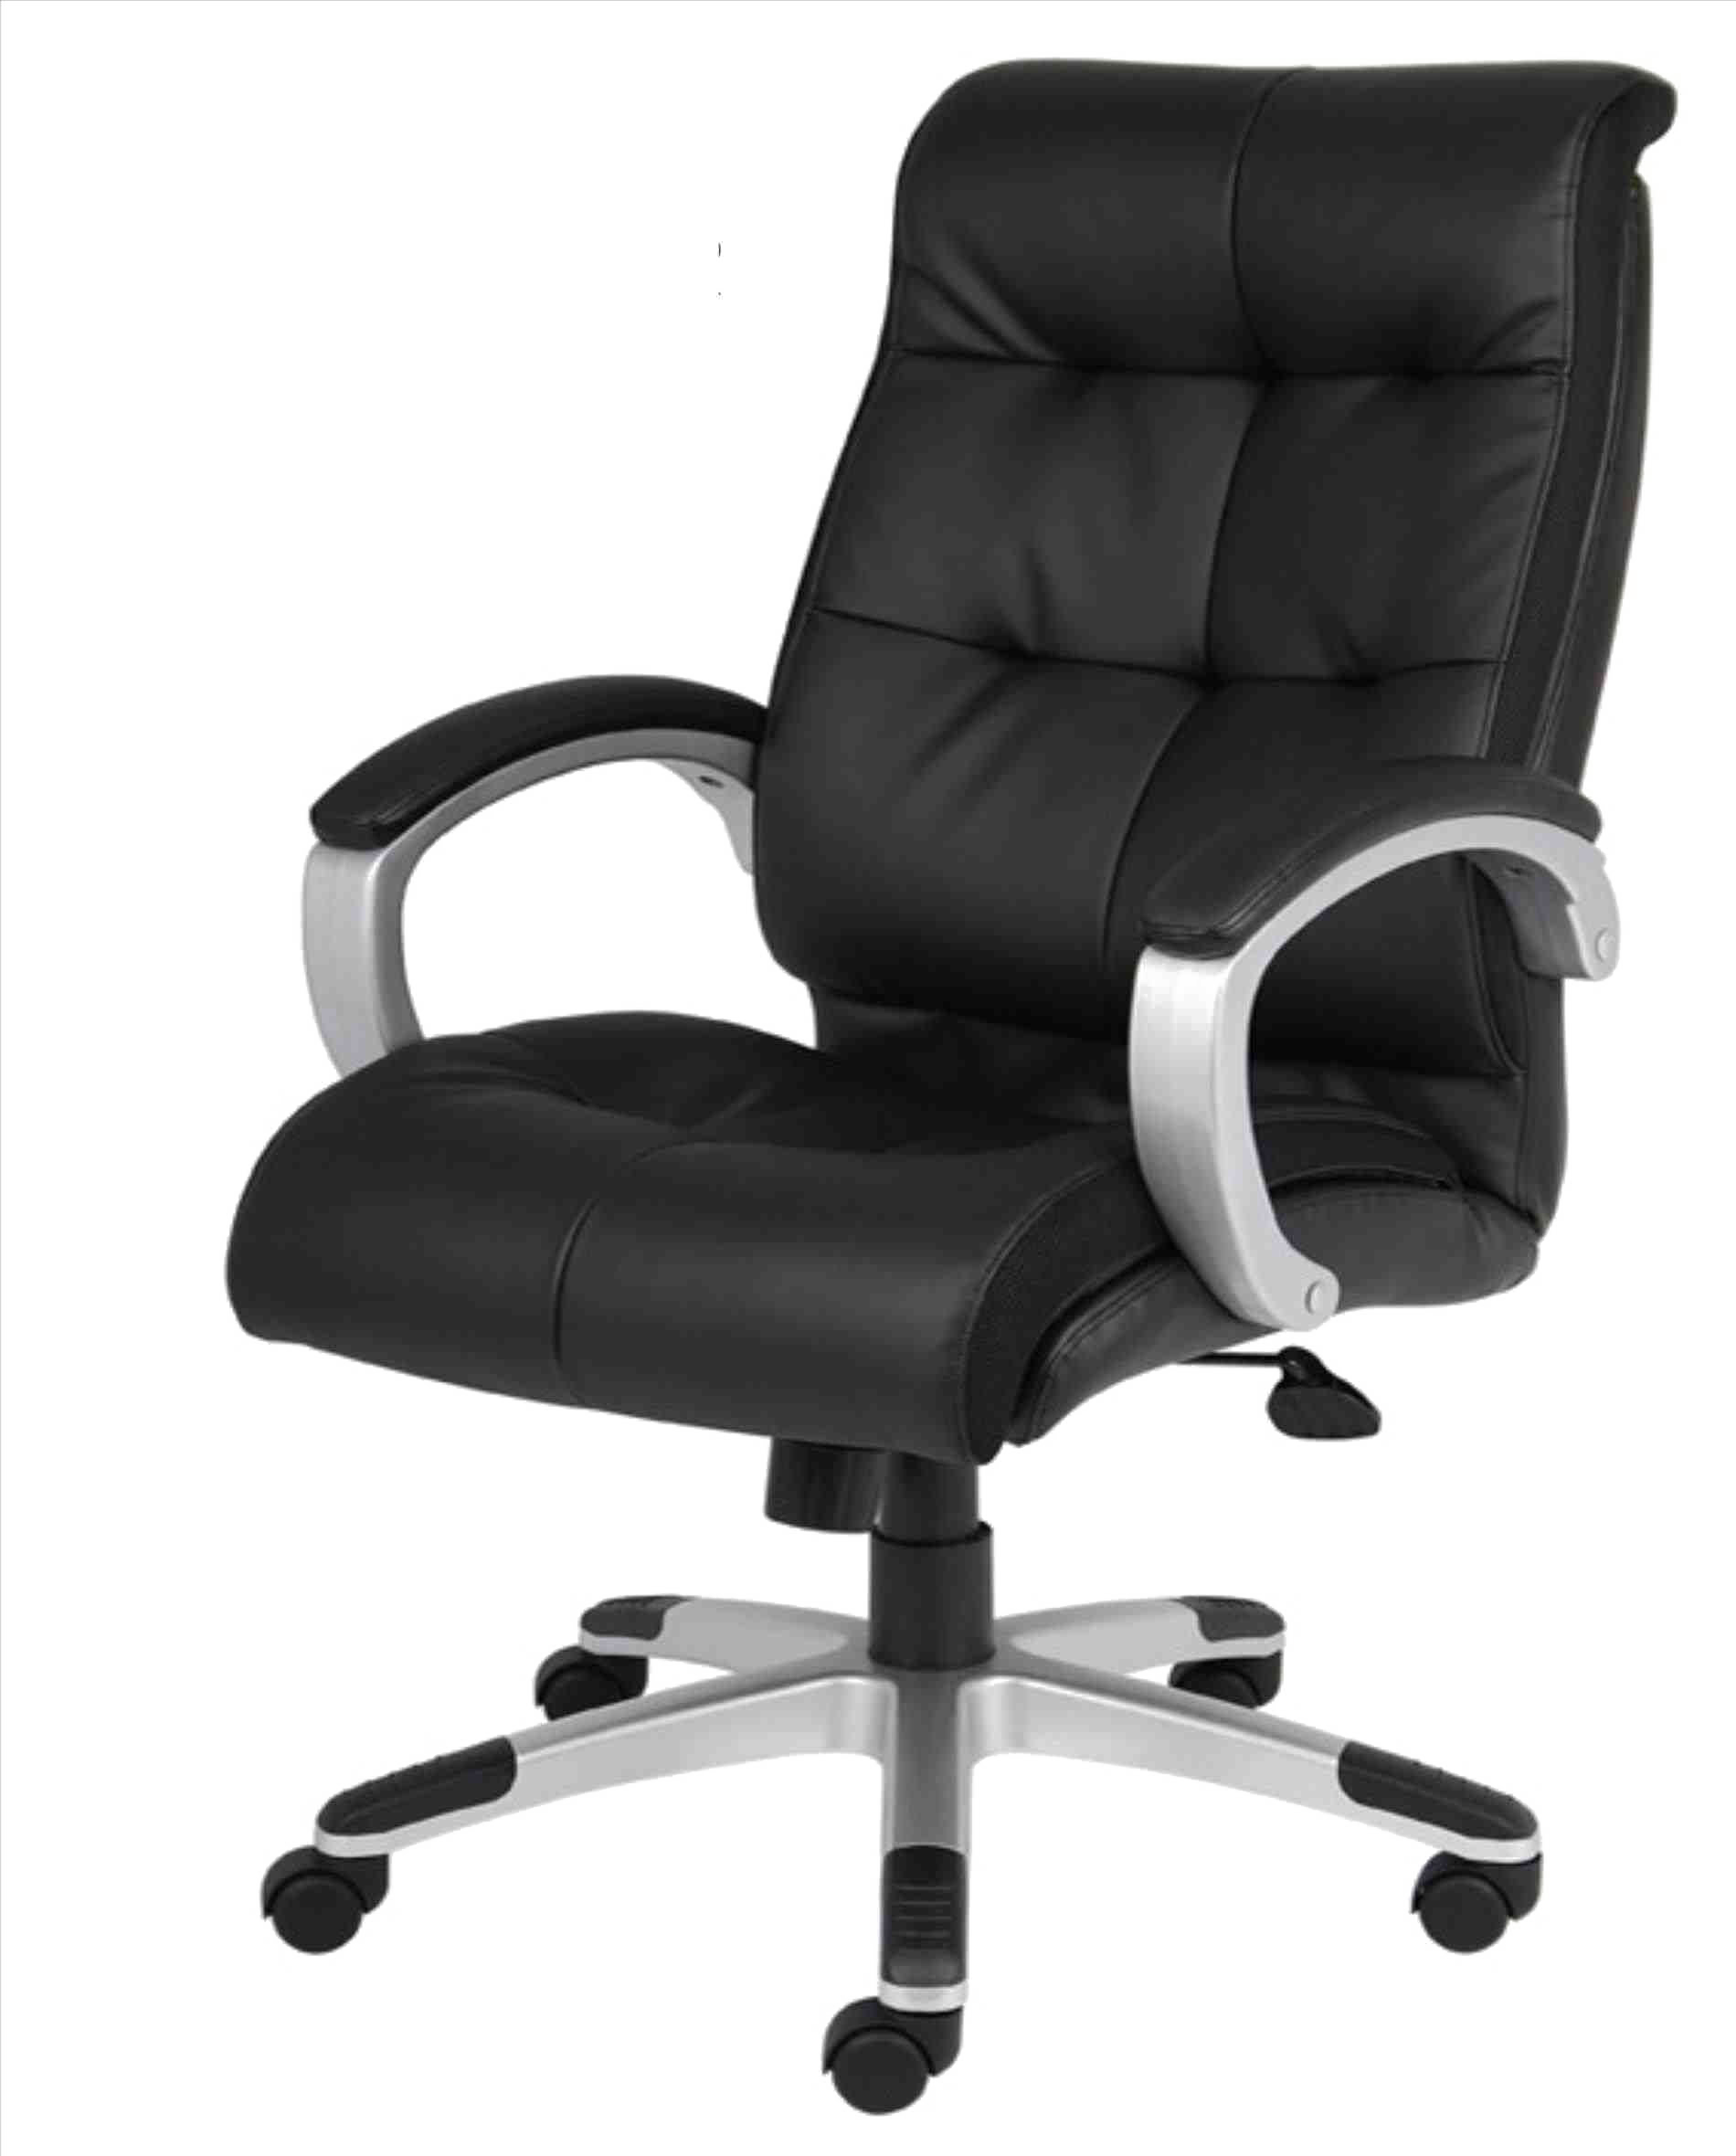 Remarkable Office Chair Transparent Background Pn 895511 Png Forskolin Free Trial Chair Design Images Forskolin Free Trialorg